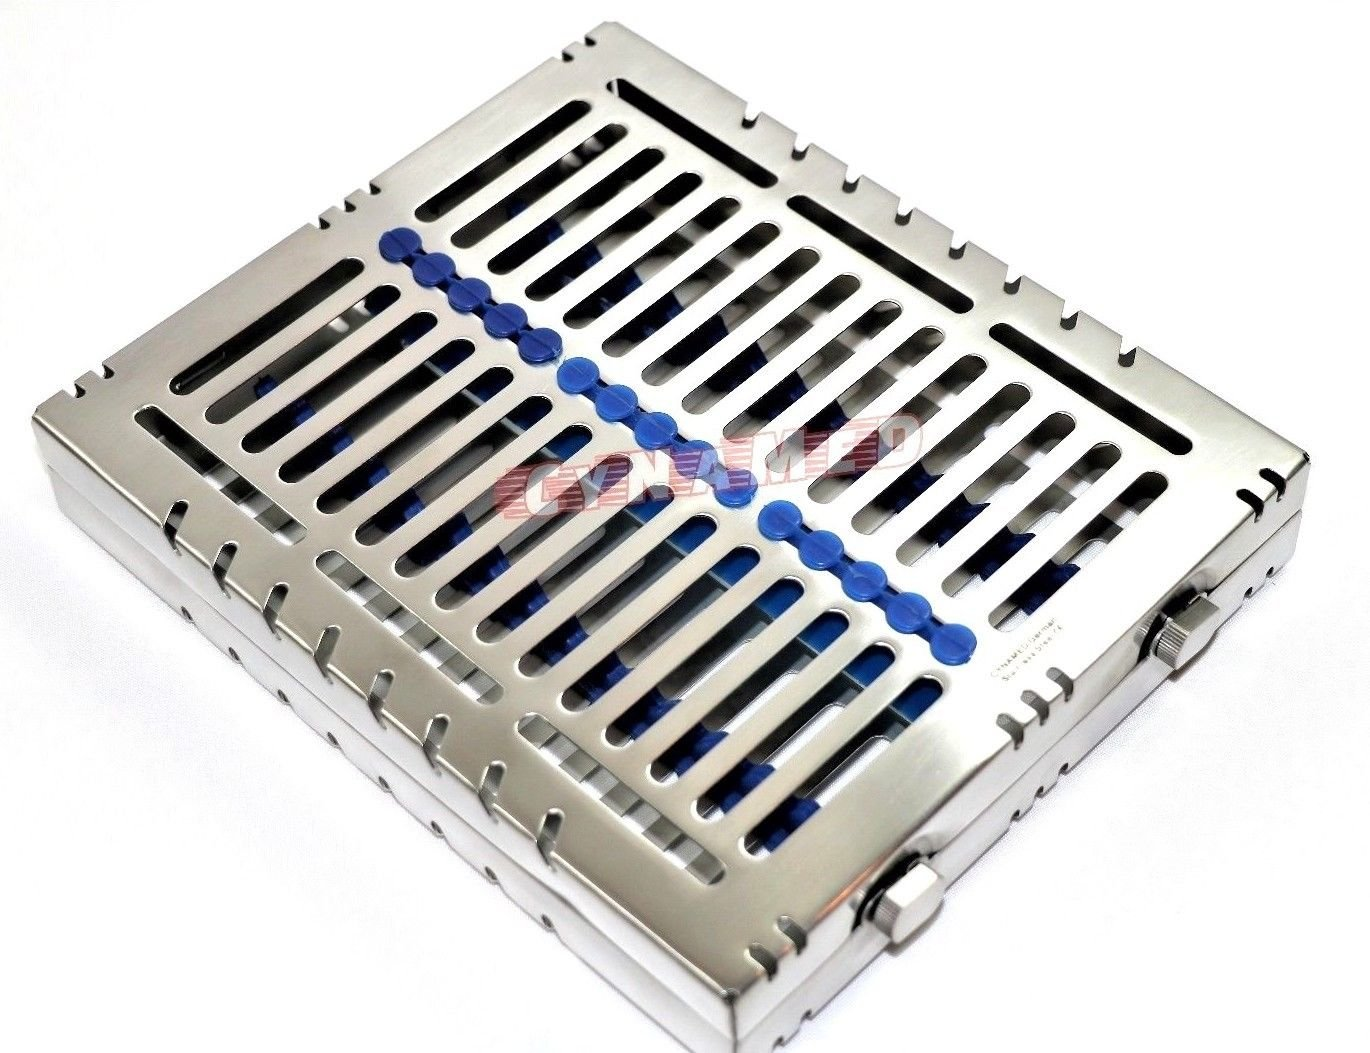 4 German Dental Autoclave Sterilization Cassette Tray for 15 Instruments 8.25X7.25X1.25'' Pink and Blue CYNAMED by CYNAMED (Image #4)